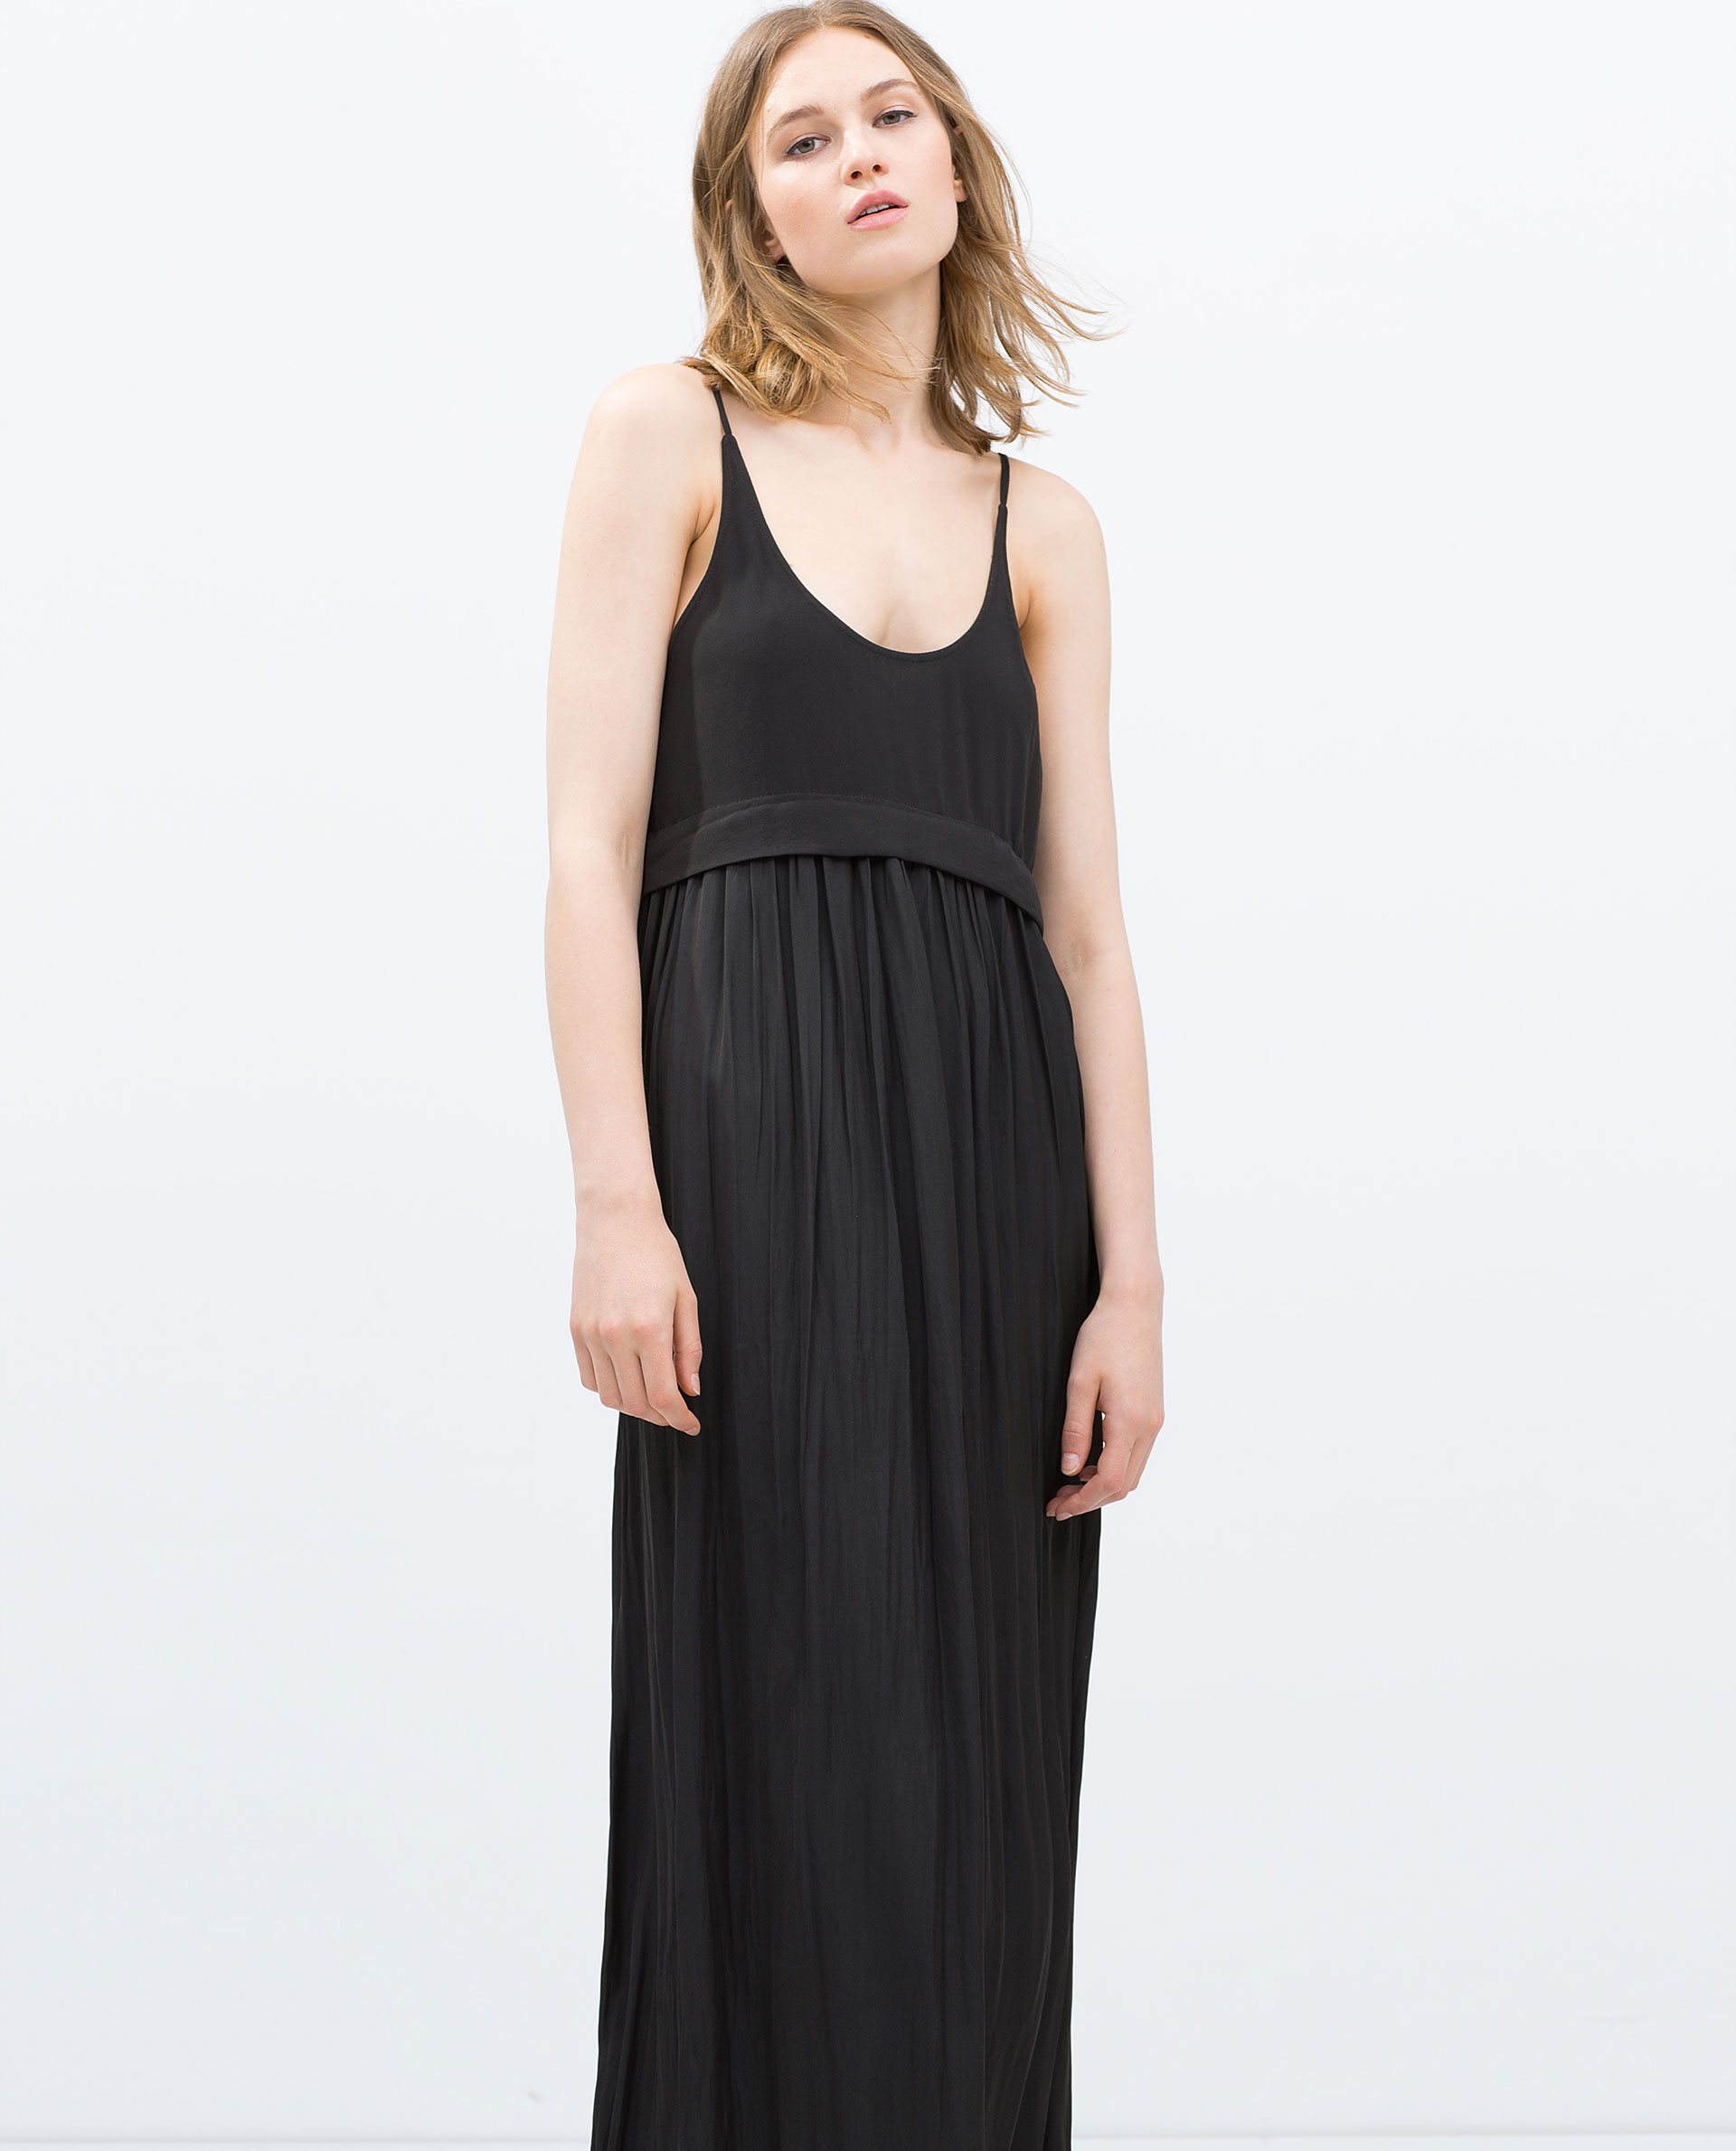 Zara Long Flowing Dress in Black | Lyst